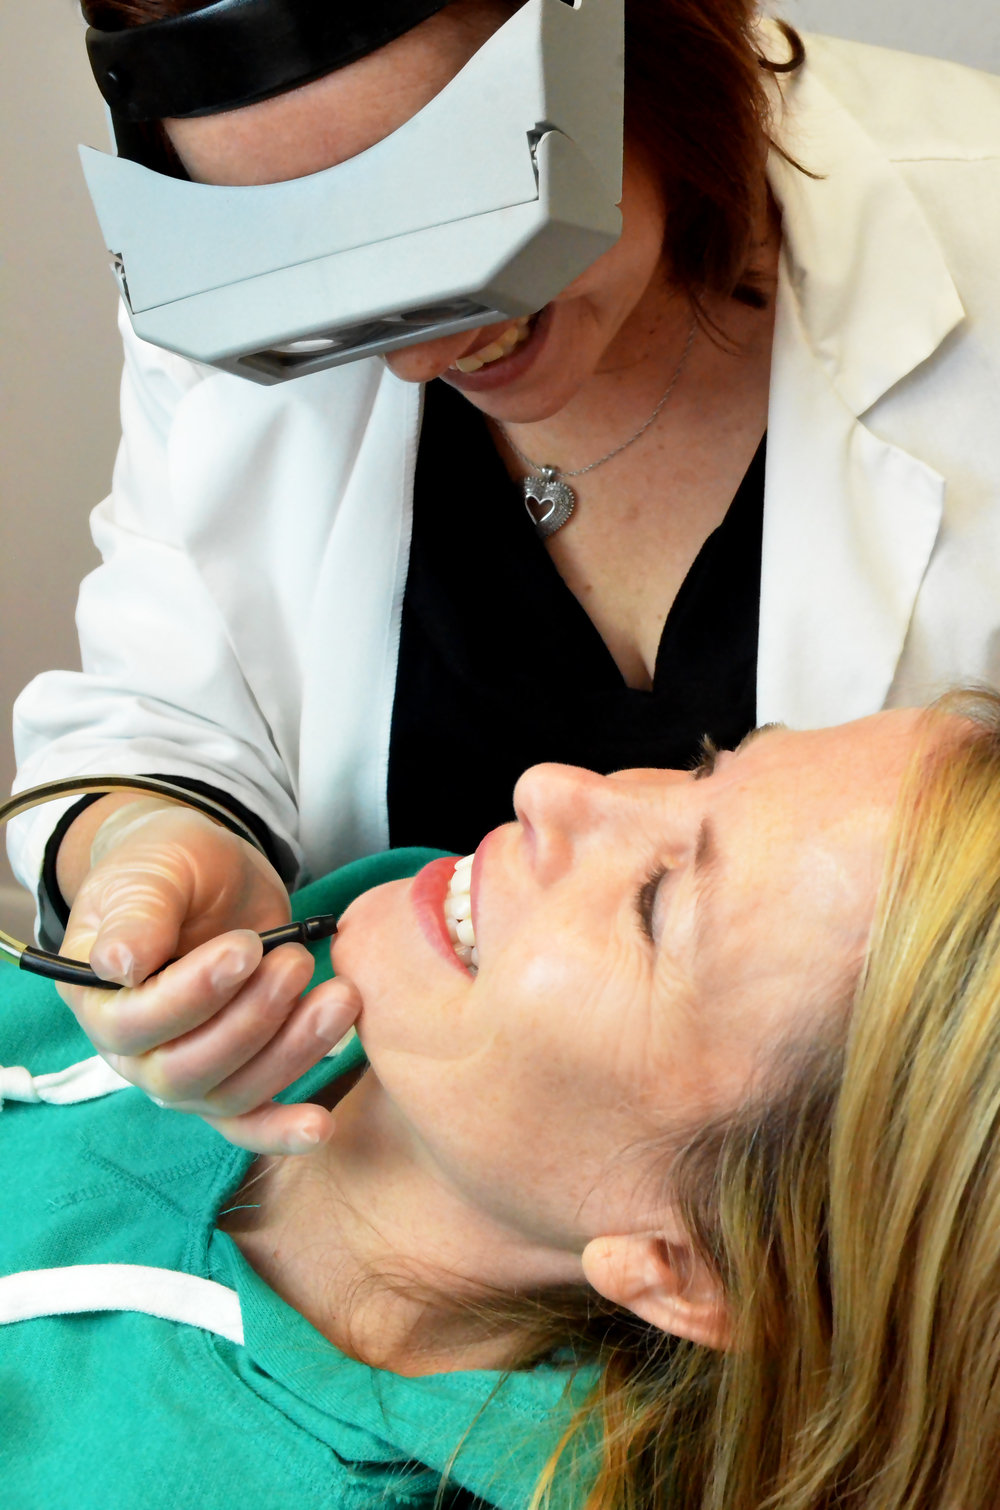 Teresa uses the method of electrolysis for hair removal on the chin of a client.